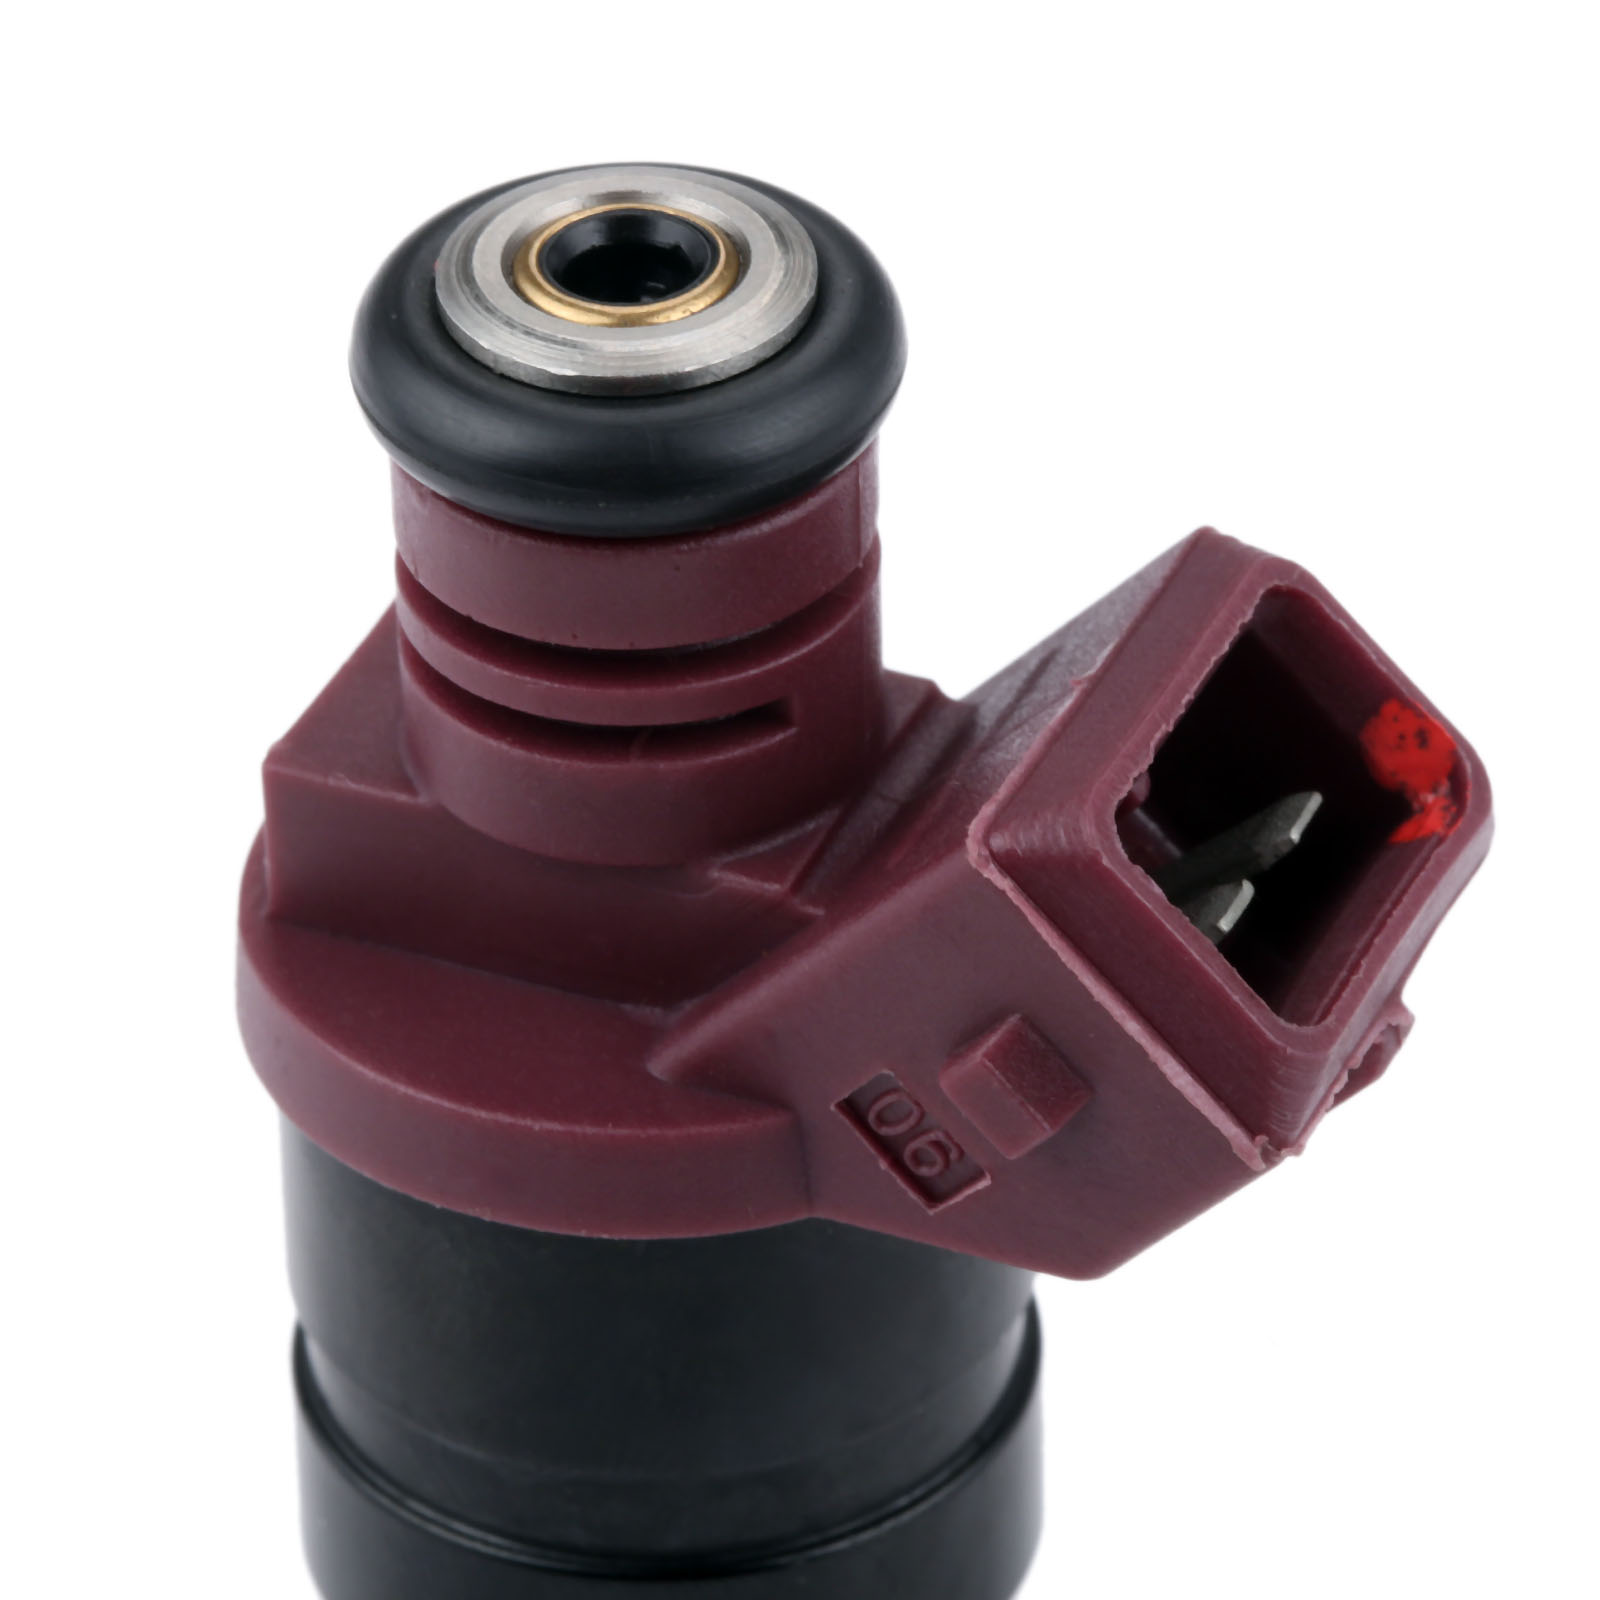 Image 5 - Yetaha New 5WY2404A Fuel Injector For John Deere 825i Gator UTV 3 Cylinder Engine Car Fuel Accessories-in Fuel Injector from Automobiles & Motorcycles